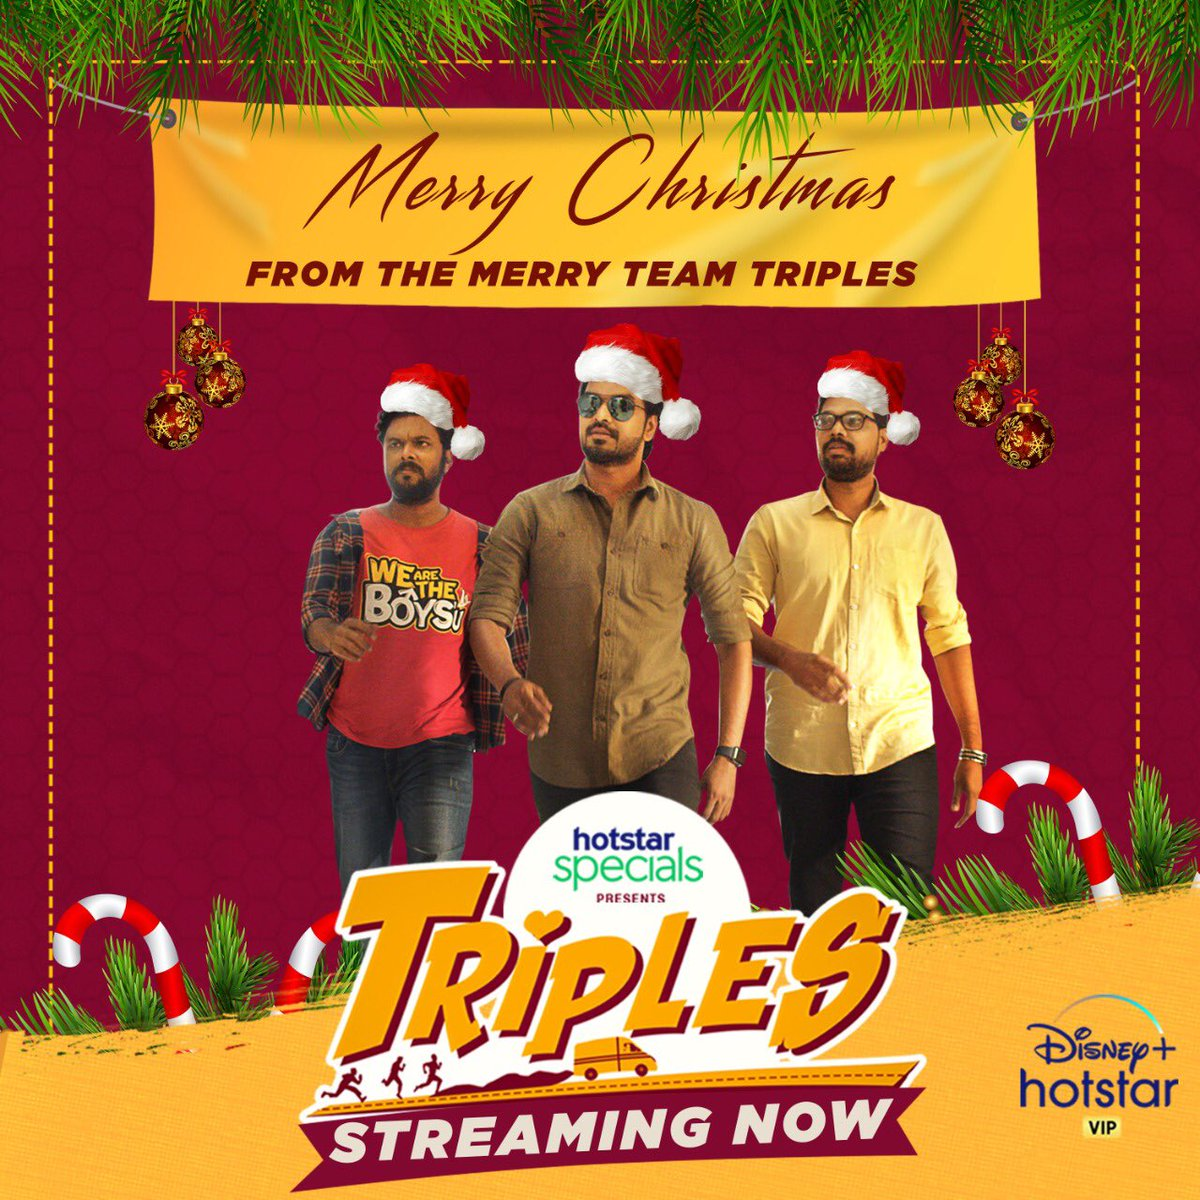 #MerryChristmas from team #Triples!! Celebrate this holiday season with the 'Triples' only on @DisneyplushsVIP #triplesthefun